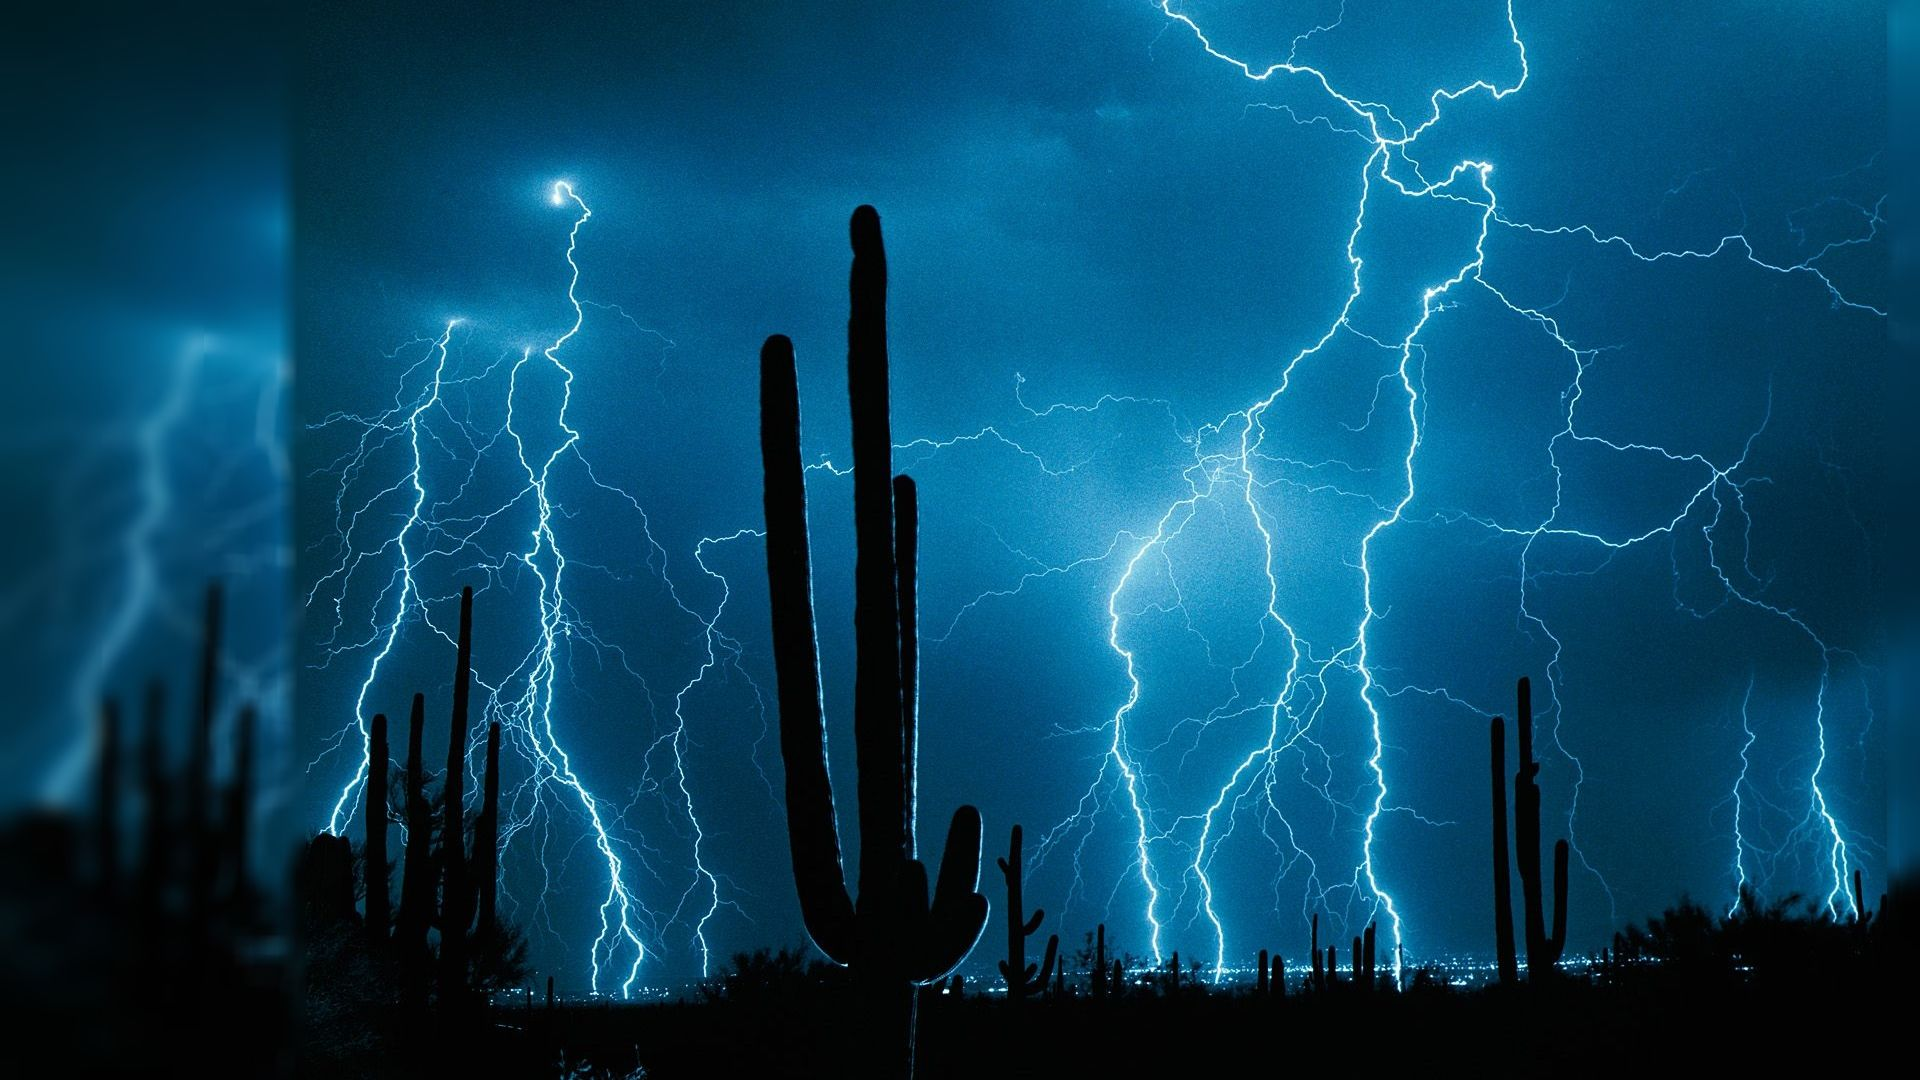 lightening storm over the desert | 40 Live Wallpapers In 4K Full HD For Free Download | thunder ...